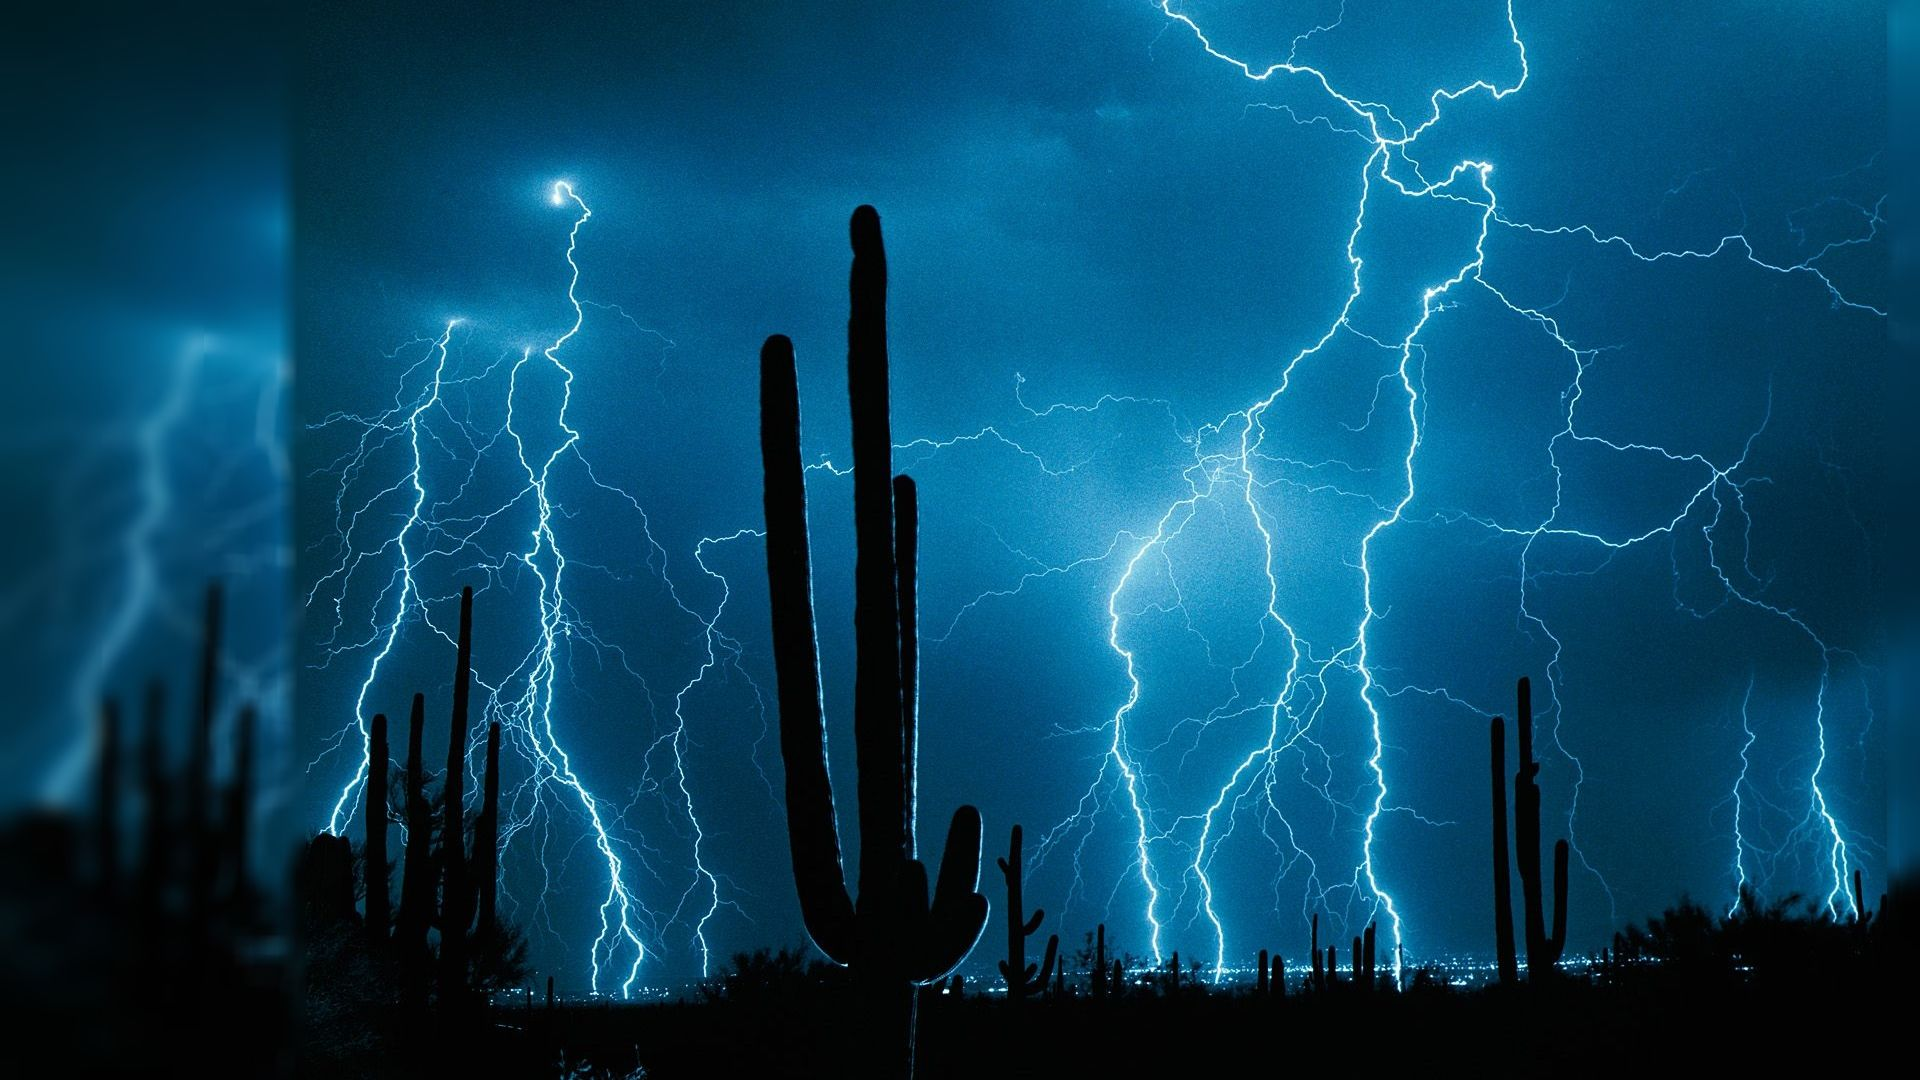 lightening storm over the desert | 40 Live Wallpapers In 4K Full HD For Free Download | thunder ...